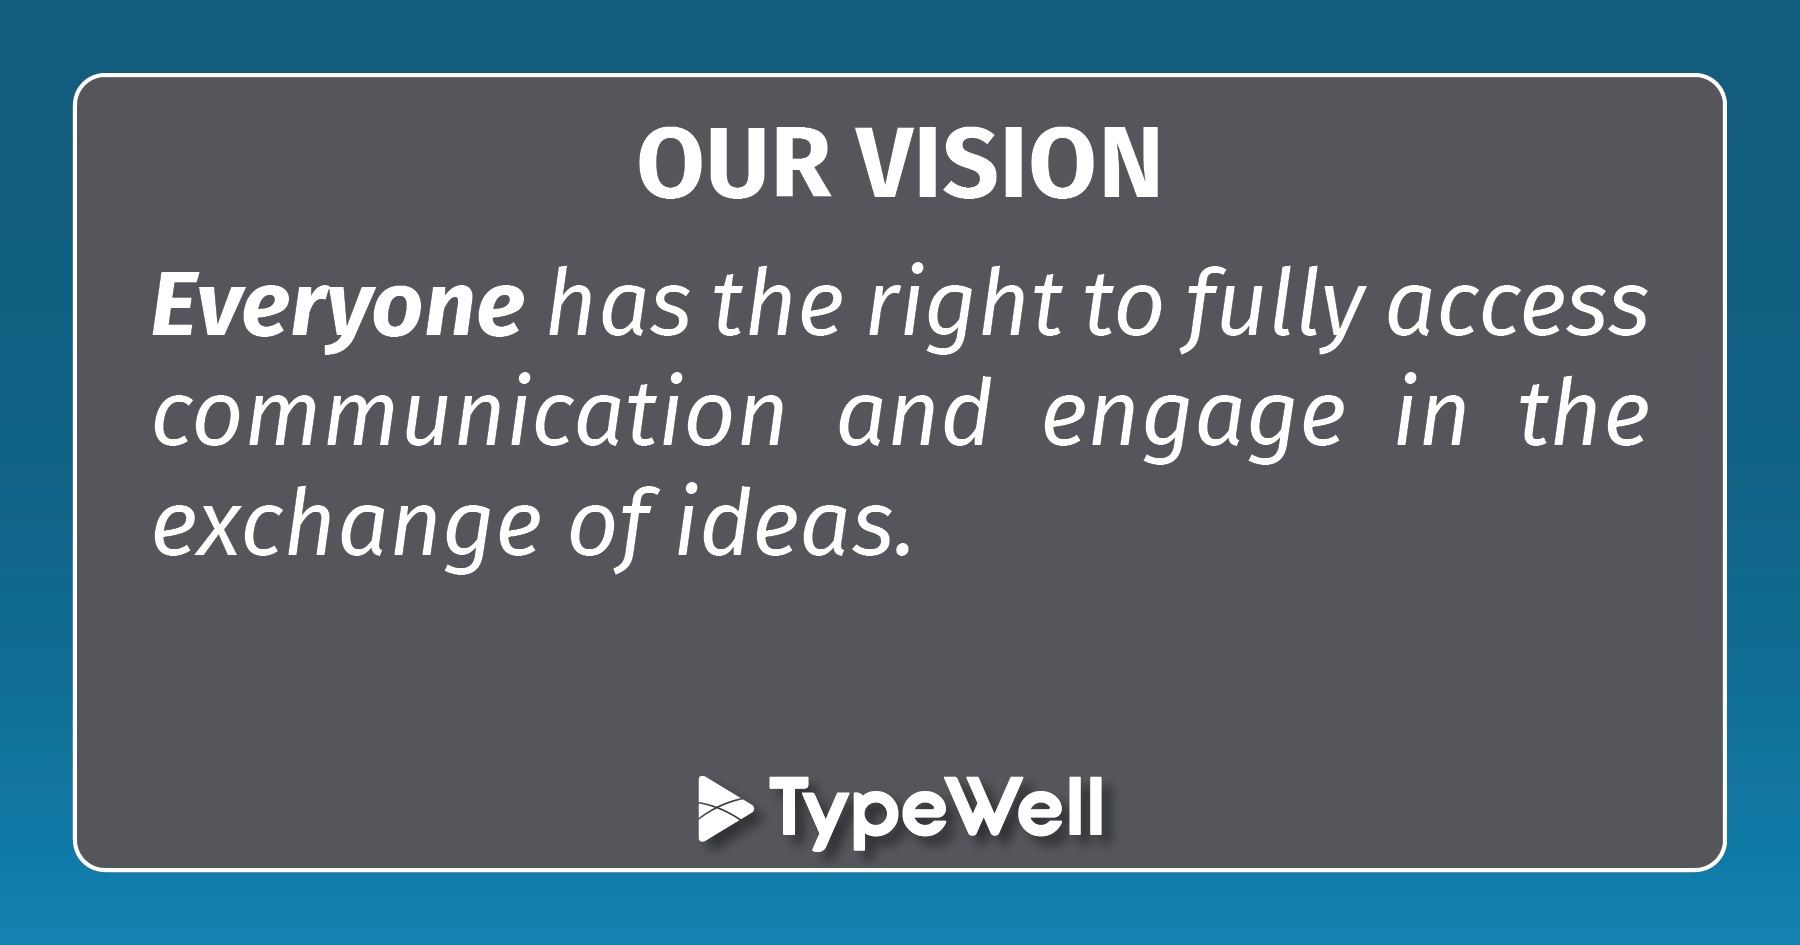 OUR VISION: Everyone has the right to fully access communication and engage in the exchange of ideas.